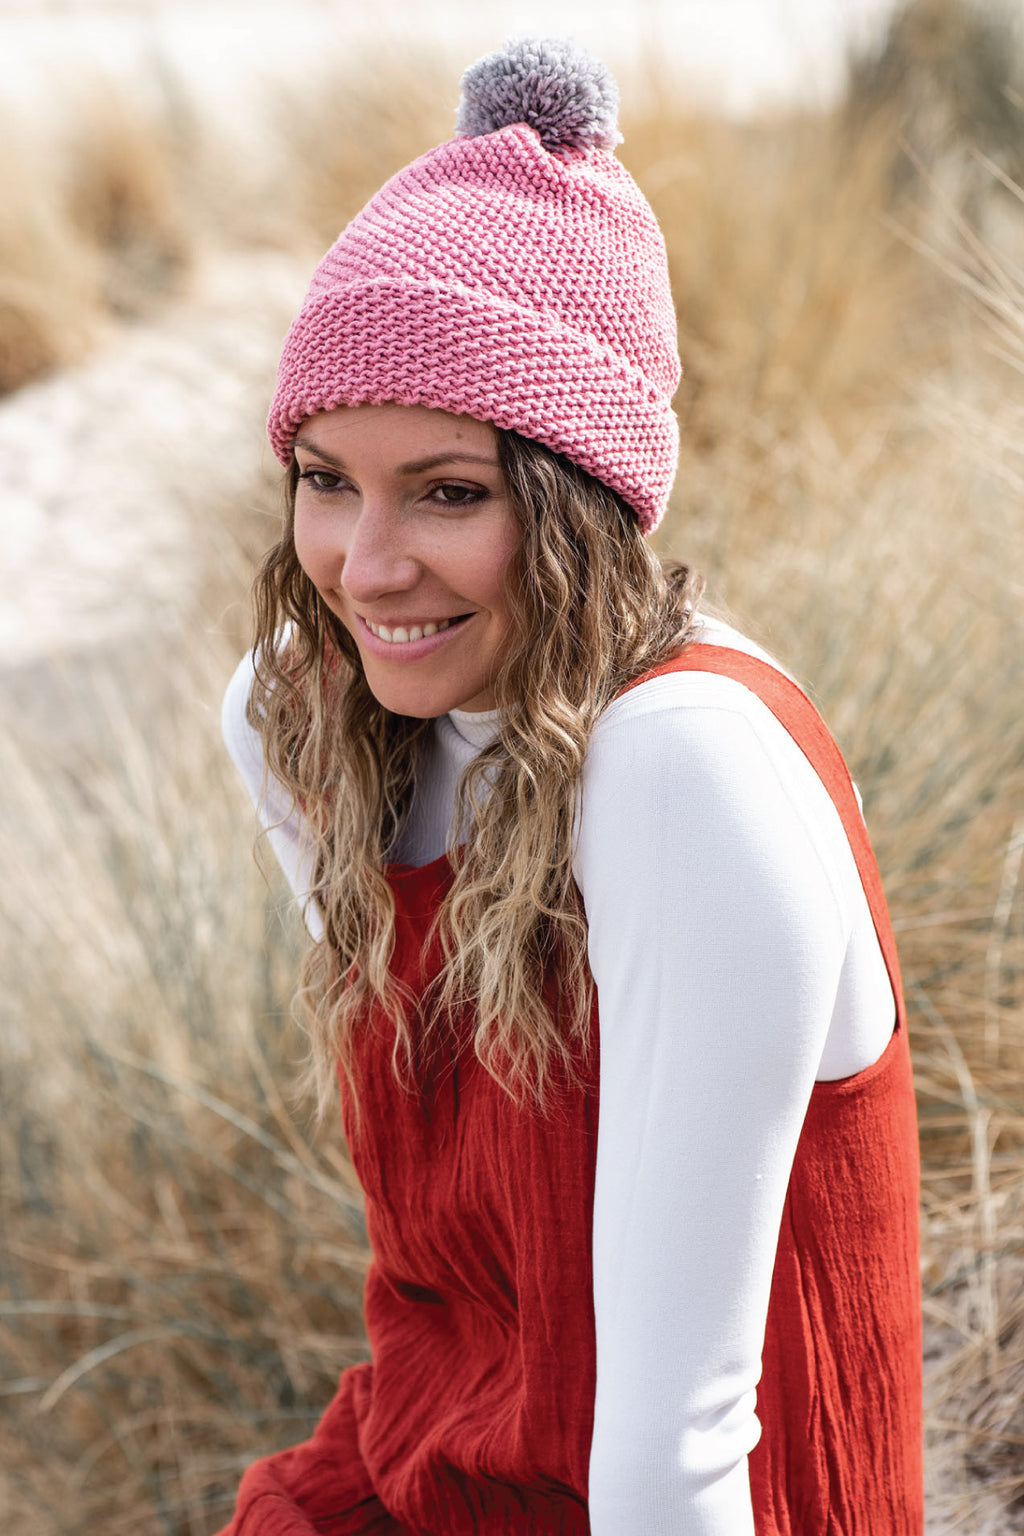 Candy Pink Pom Pom Beanie Beanies Ethical Sustainable Vegan Organic Australian fashion womens clothes